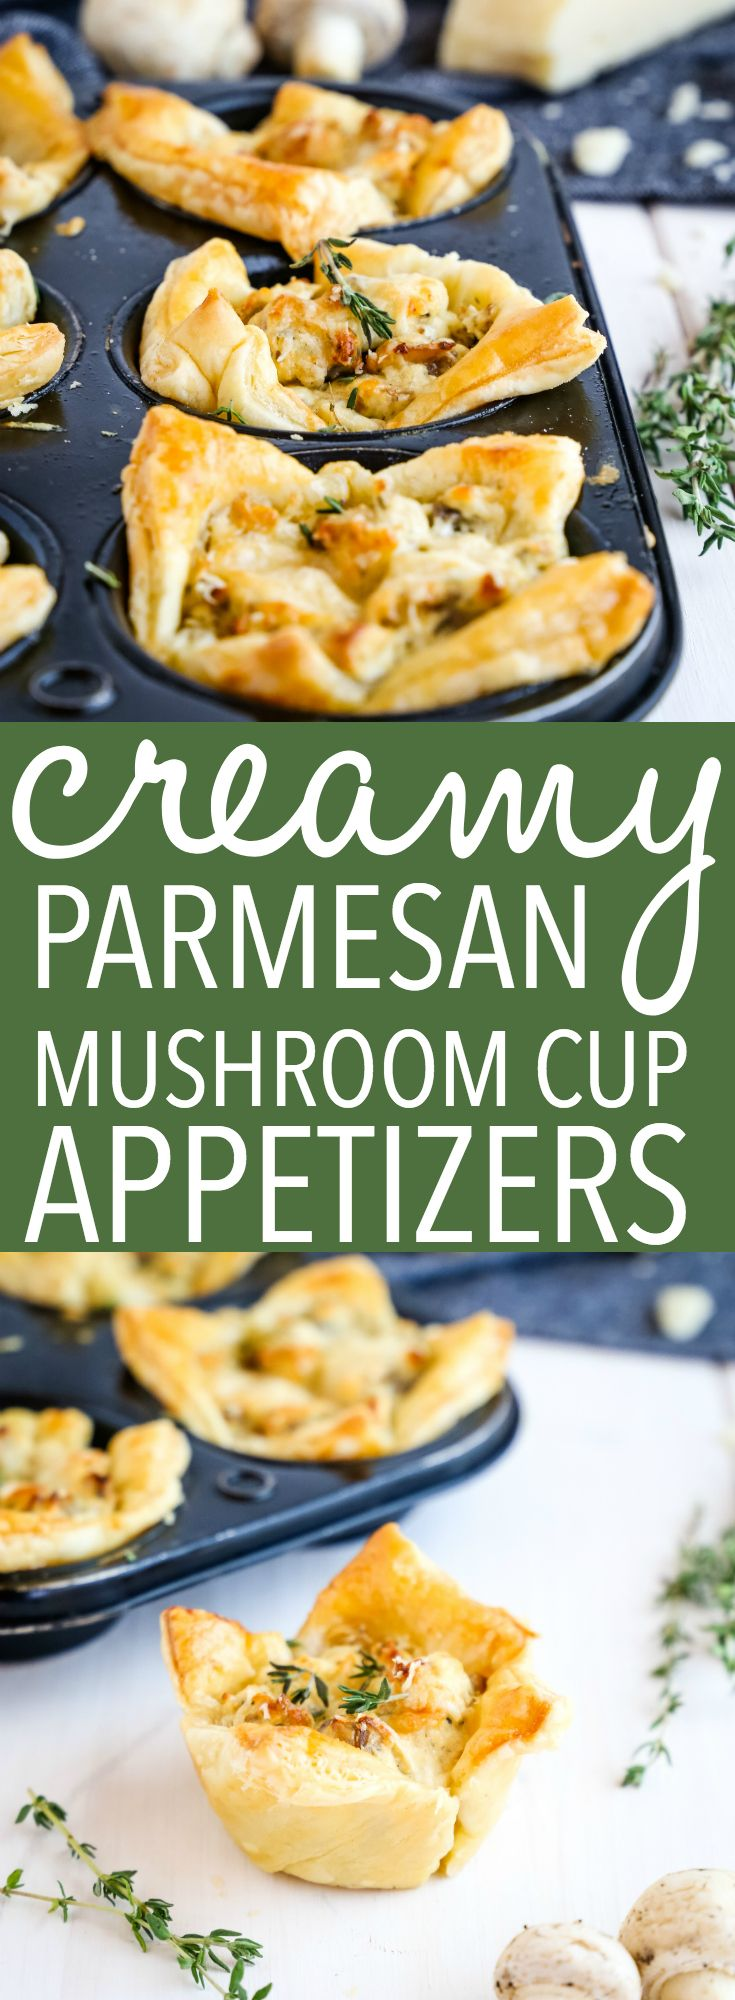 Creamy Parmesan Mushroom Cup Appetizers images